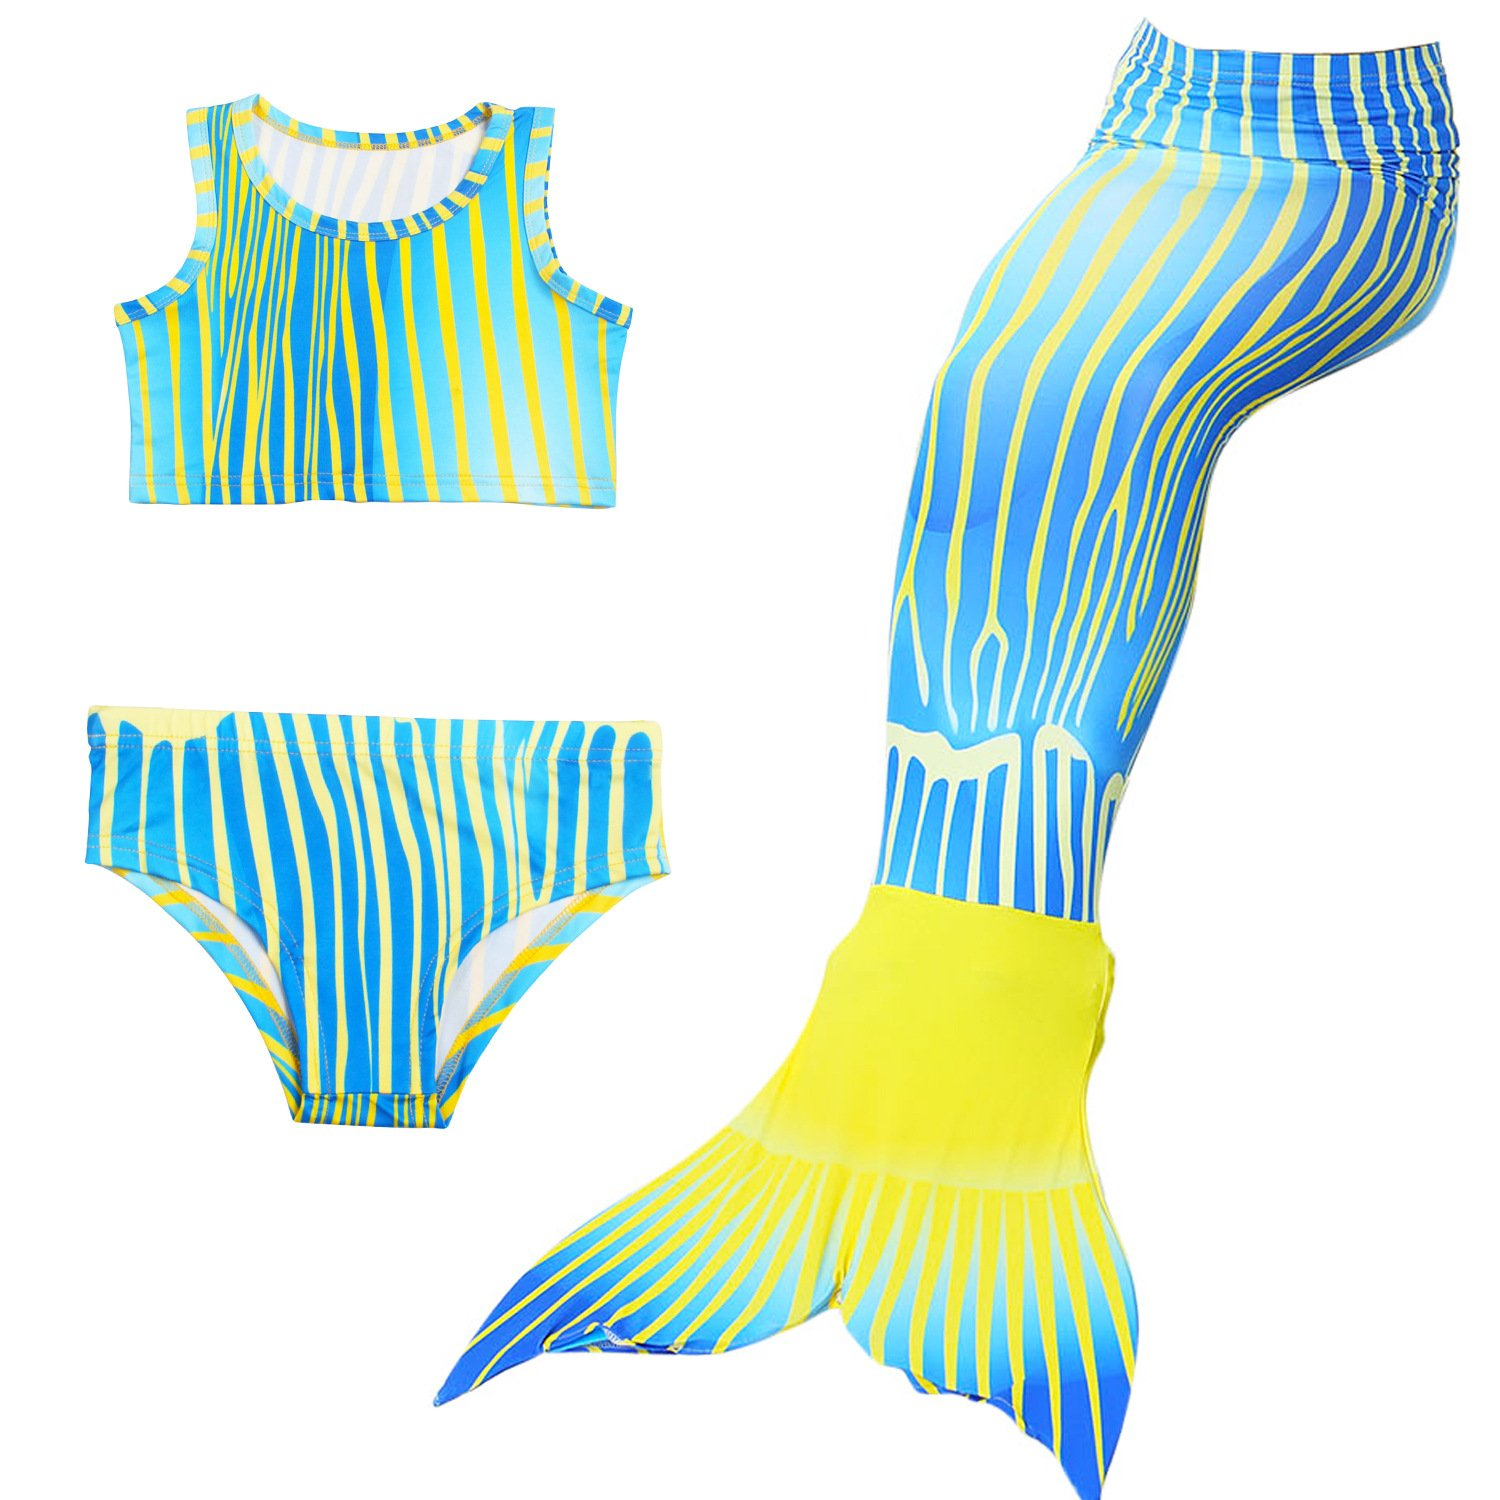 Stven Hetick Girls theme party beach holiday theme party wimwear cover up sets 3PC